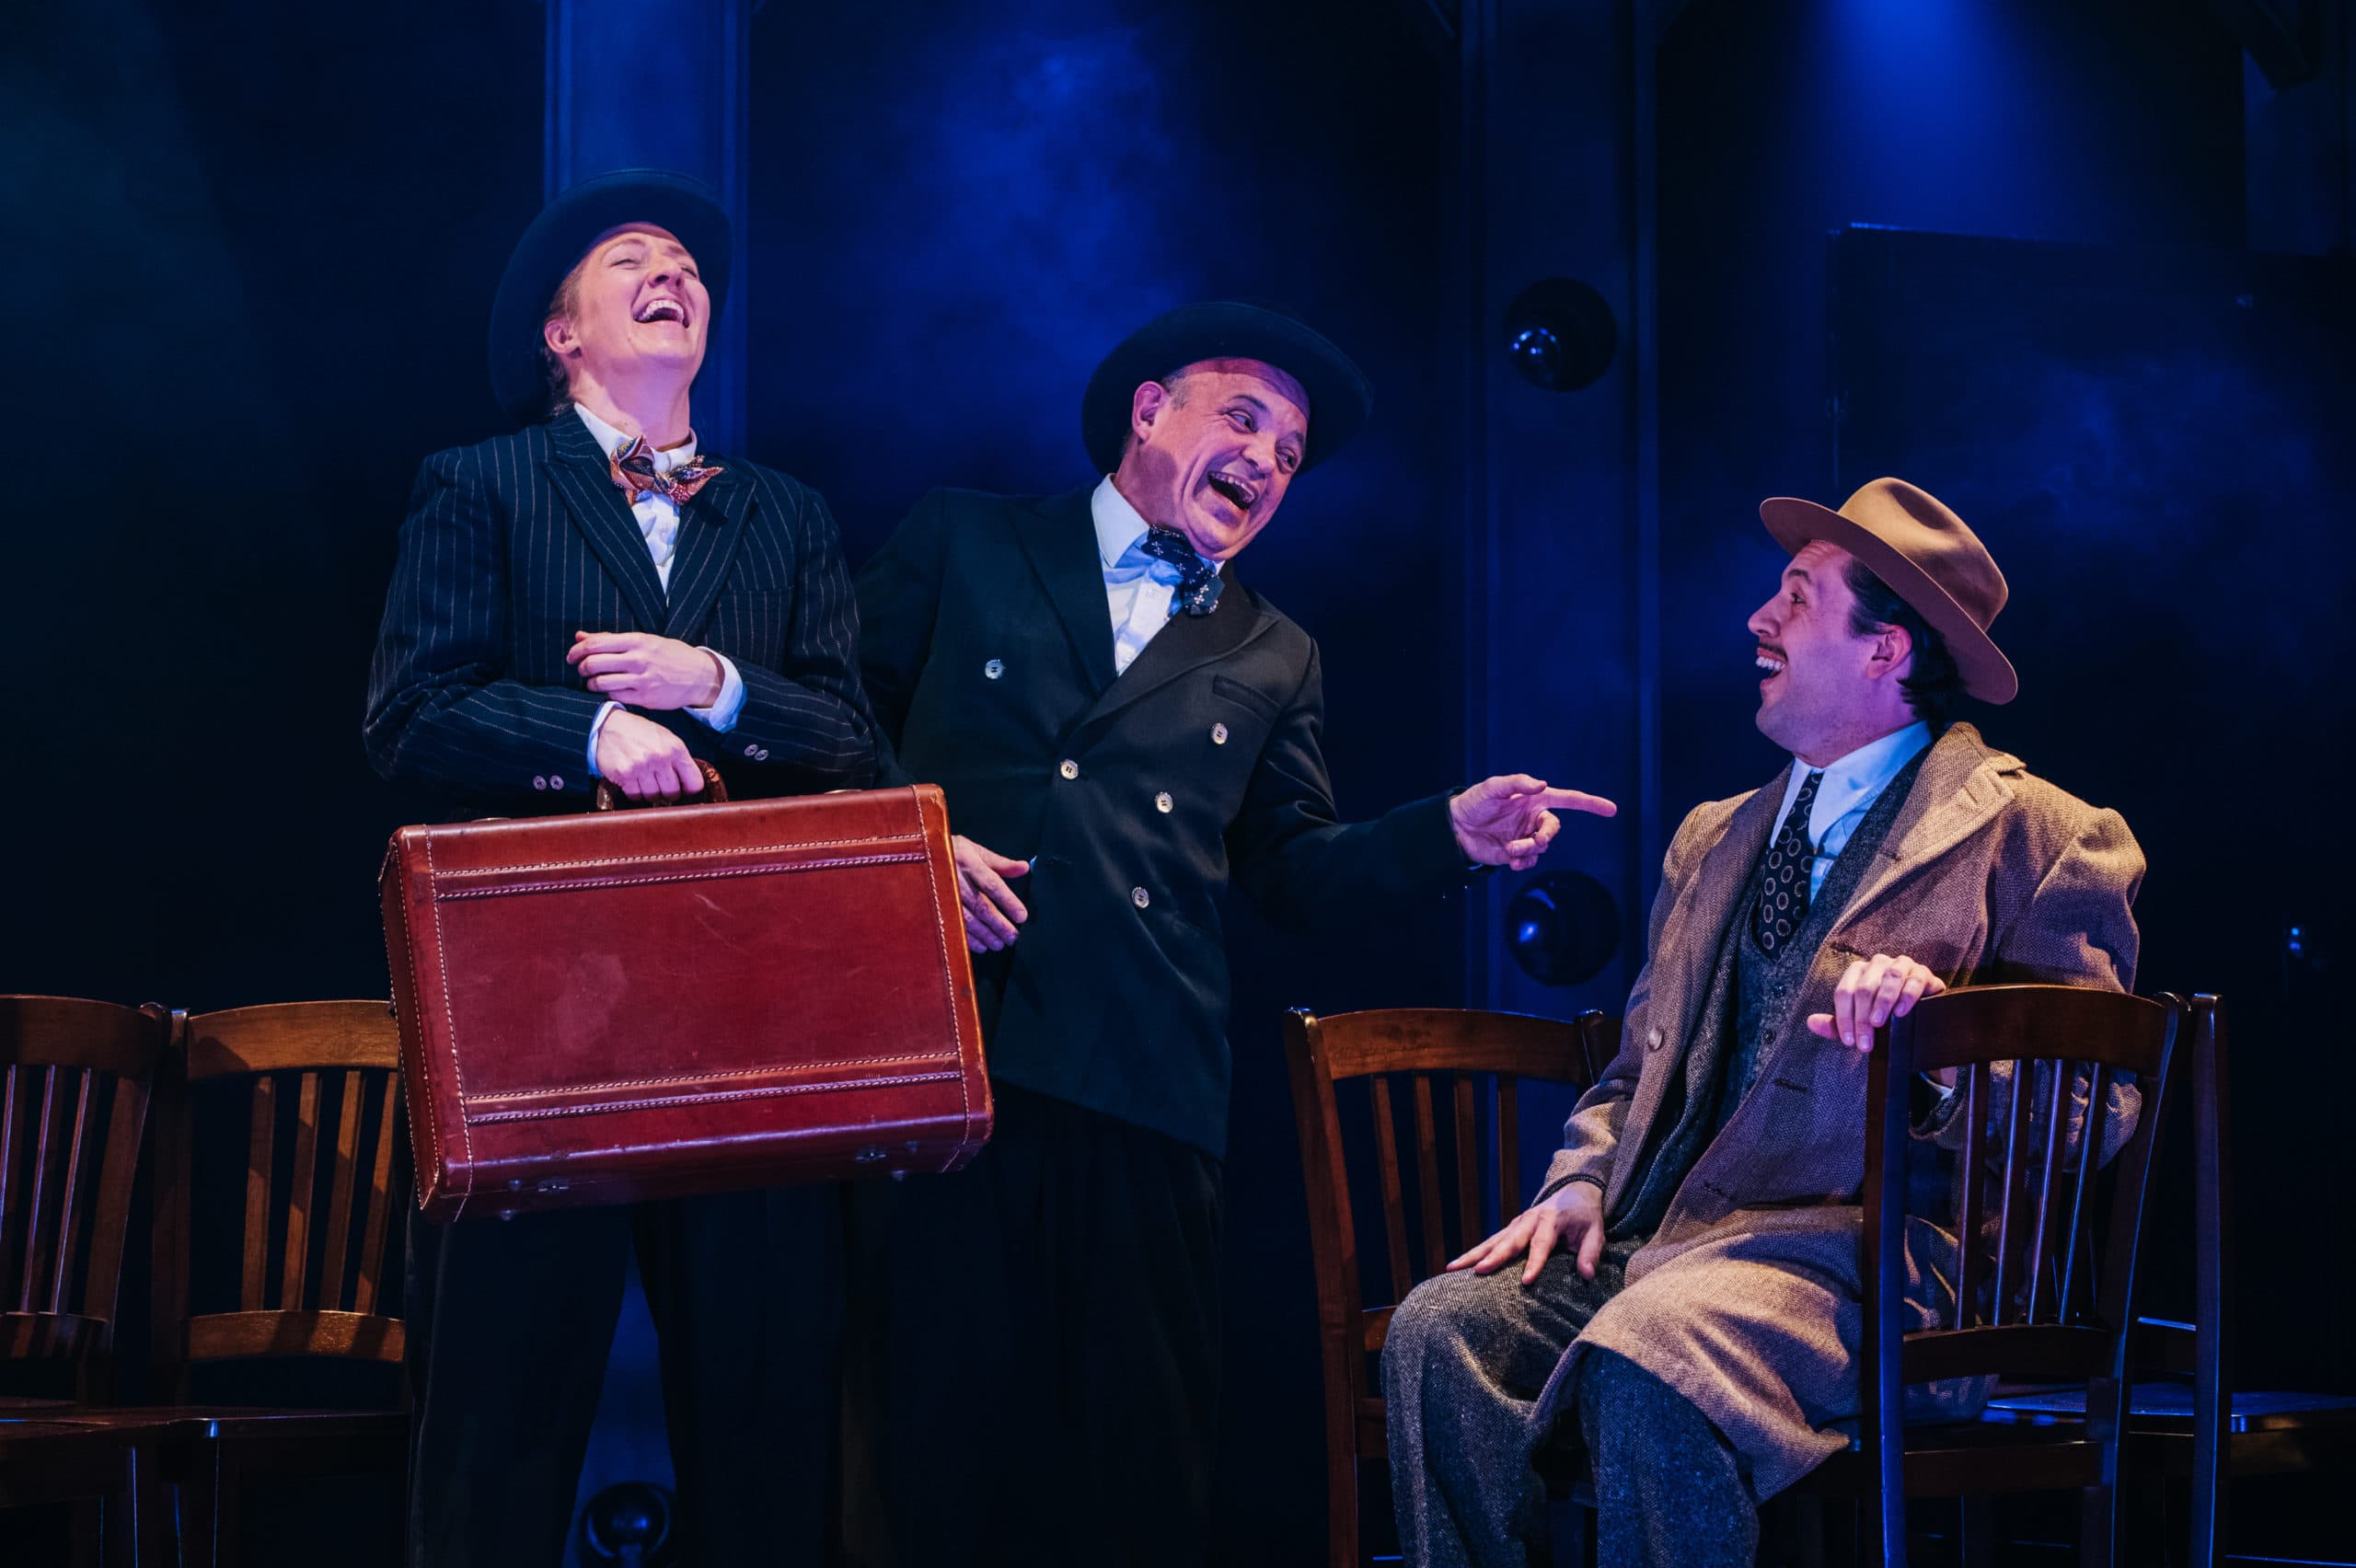 Gwen Grastorf, Christopher Walker, and Drew Kopas in 'The 39 Steps' at Constellation Theatre. Photo by Cameron Whitman Photography.